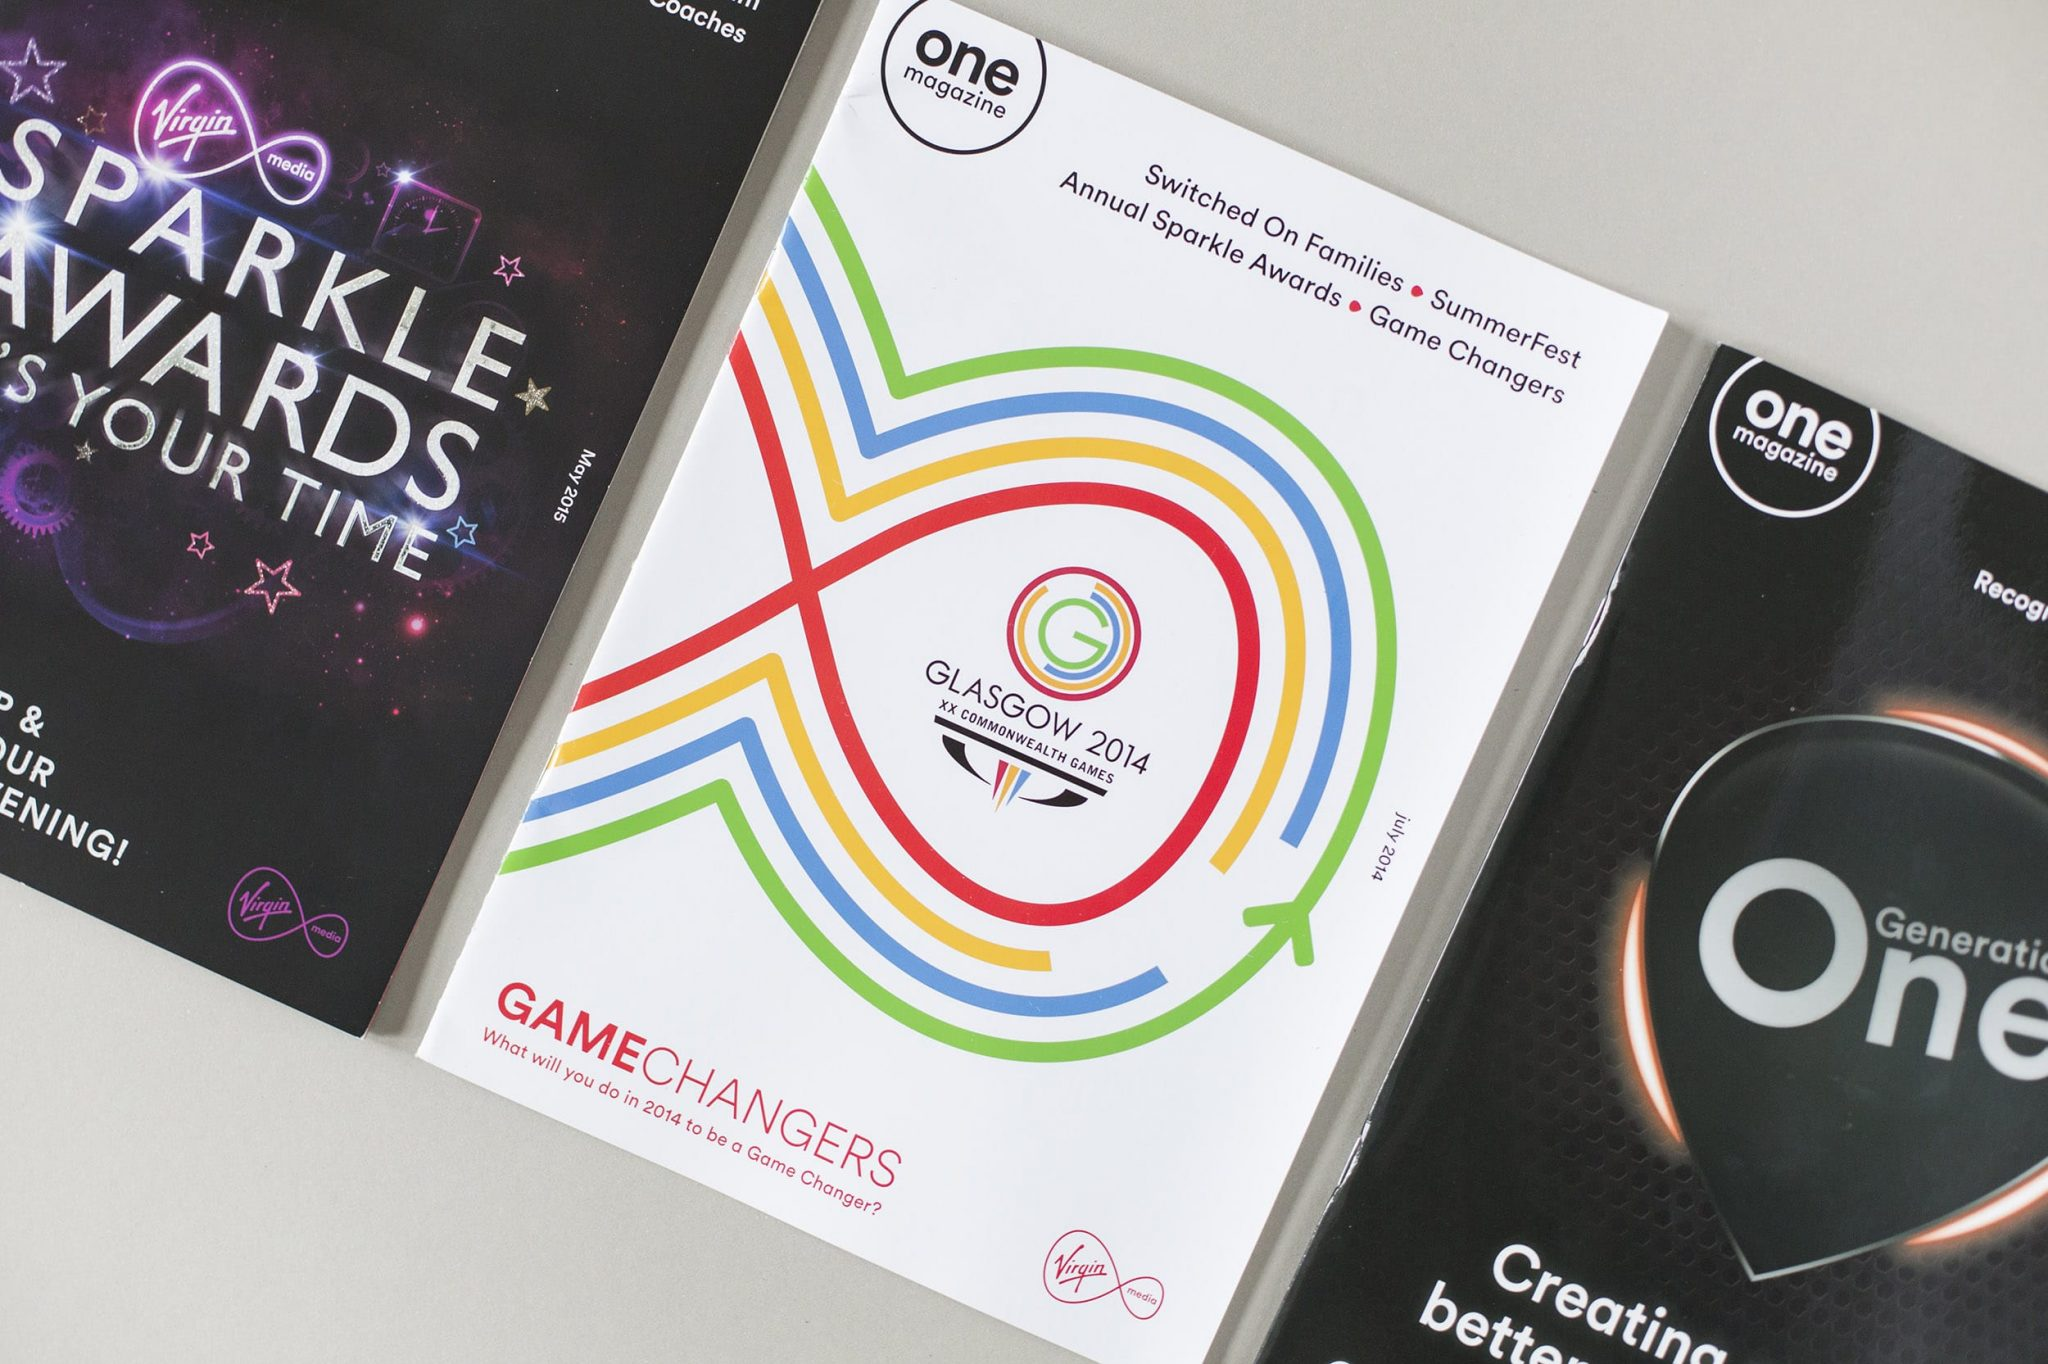 Virgin Media One Magazine design and print project